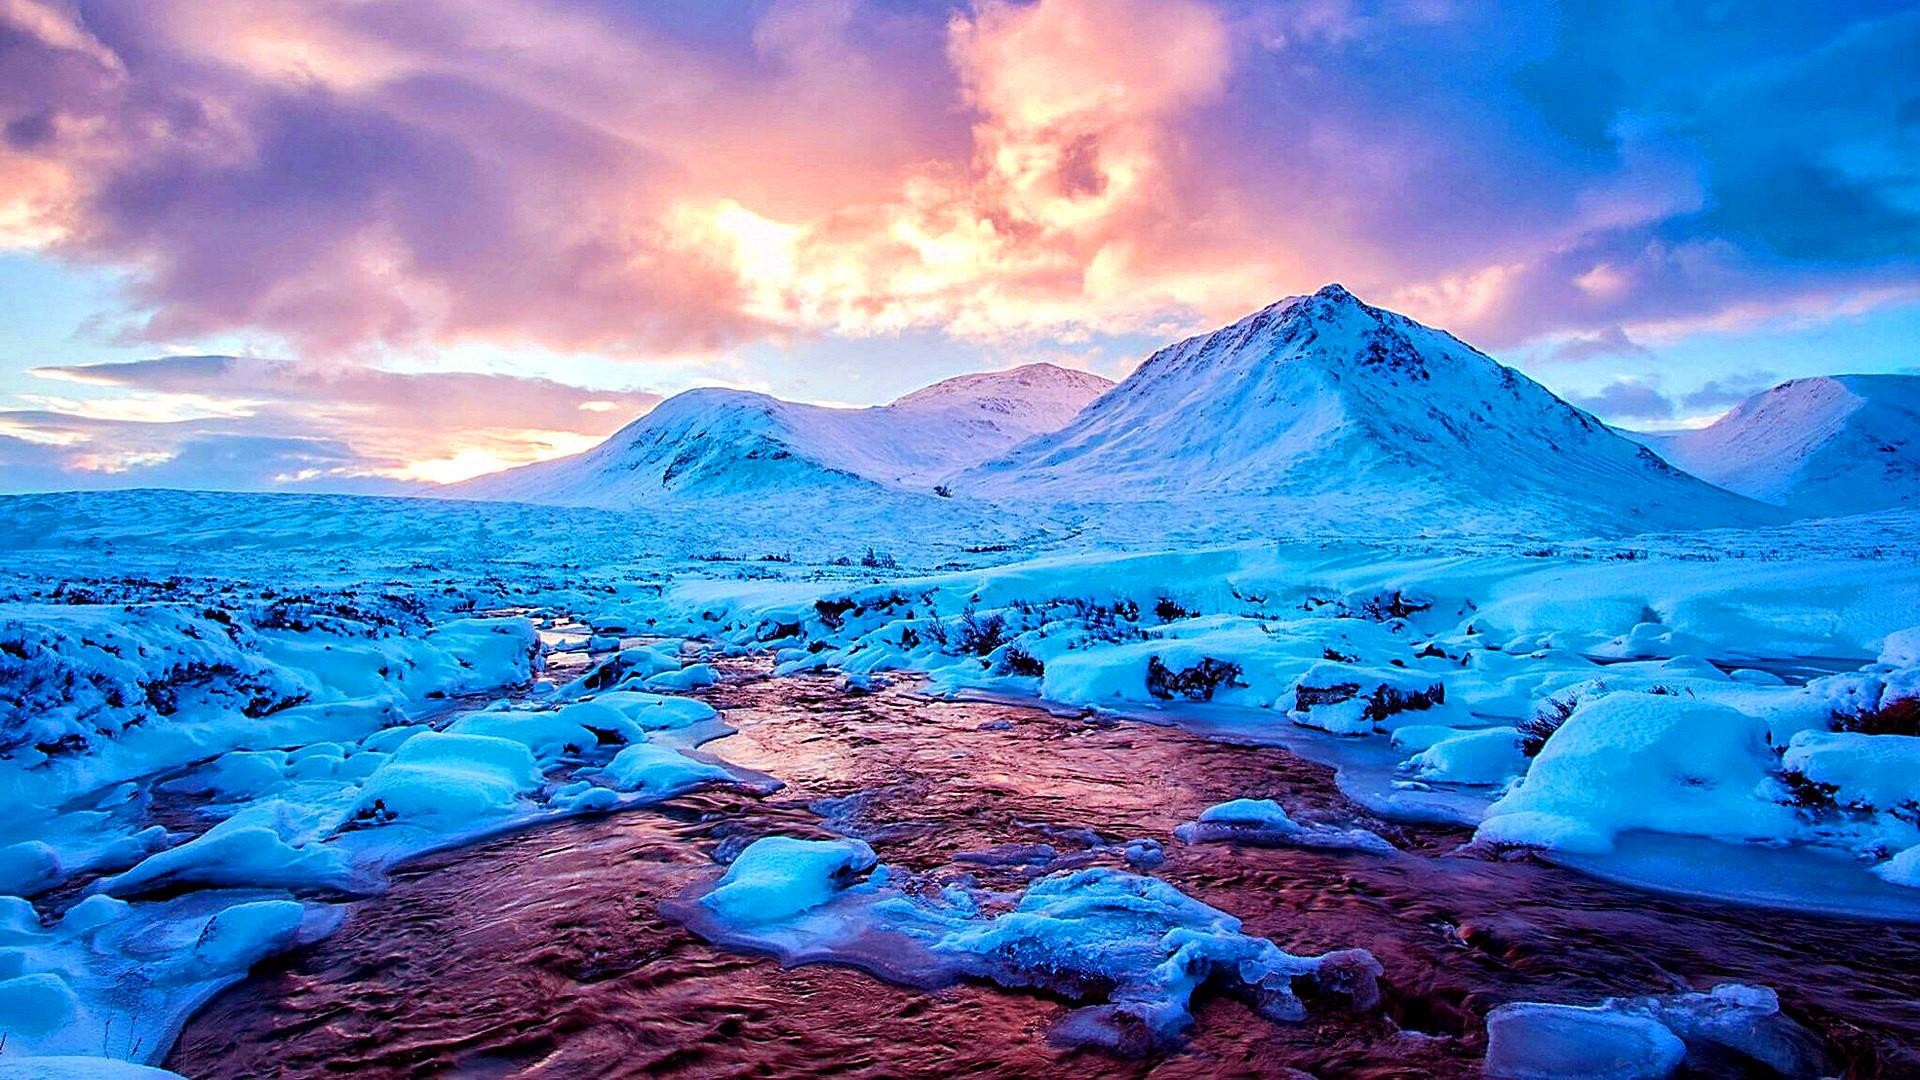 Res: 1920x1080, Highlands Of Scotland In Winter Wallpaper | Wallpaper Studio 10 | Tens of  thousands HD and UltraHD wallpapers for Android, Windows and Xbox